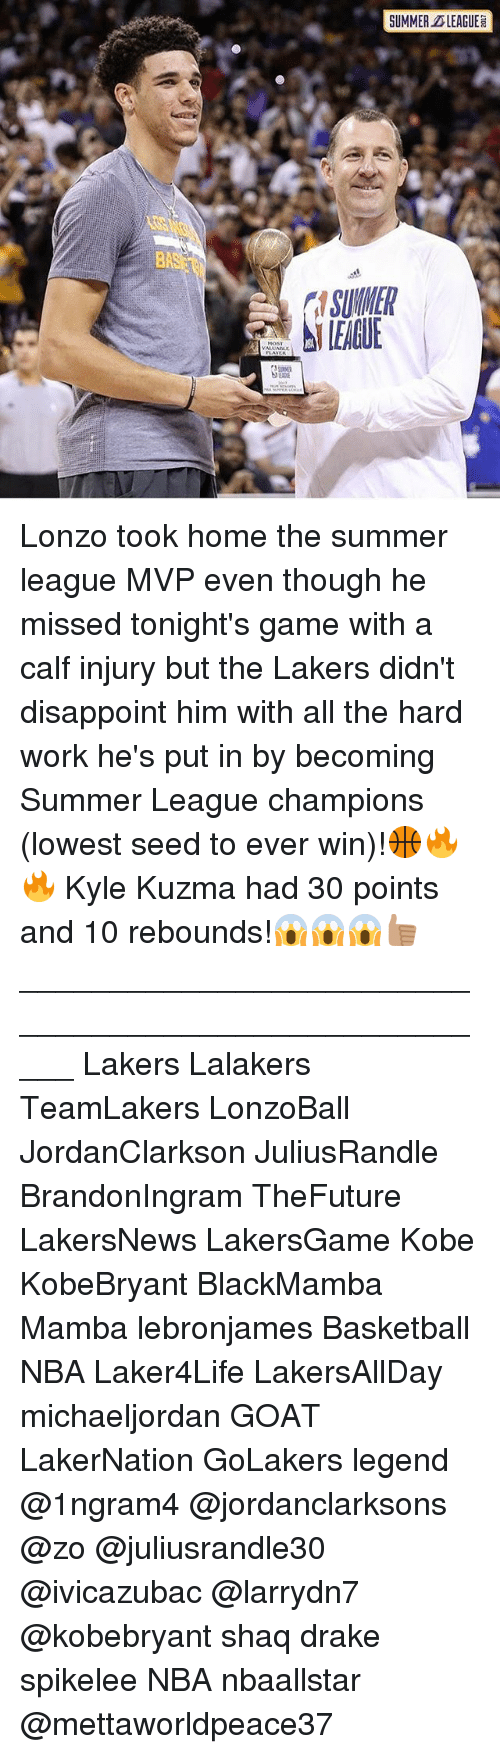 Kylee: SUMMER LEAGUE  SUMNER  LEAGUE Lonzo took home the summer league MVP even though he missed tonight's game with a calf injury but the Lakers didn't disappoint him with all the hard work he's put in by becoming Summer League champions (lowest seed to ever win)!🏀🔥🔥 Kyle Kuzma had 30 points and 10 rebounds!😱😱😱👍🏽 _____________________________________________________ Lakers Lalakers TeamLakers LonzoBall JordanClarkson JuliusRandle BrandonIngram TheFuture LakersNews LakersGame Kobe KobeBryant BlackMamba Mamba lebronjames Basketball NBA Laker4Life LakersAllDay michaeljordan GOAT LakerNation GoLakers legend @1ngram4 @jordanclarksons @zo @juliusrandle30 @ivicazubac @larrydn7 @kobebryant shaq drake spikelee NBA nbaallstar @mettaworldpeace37